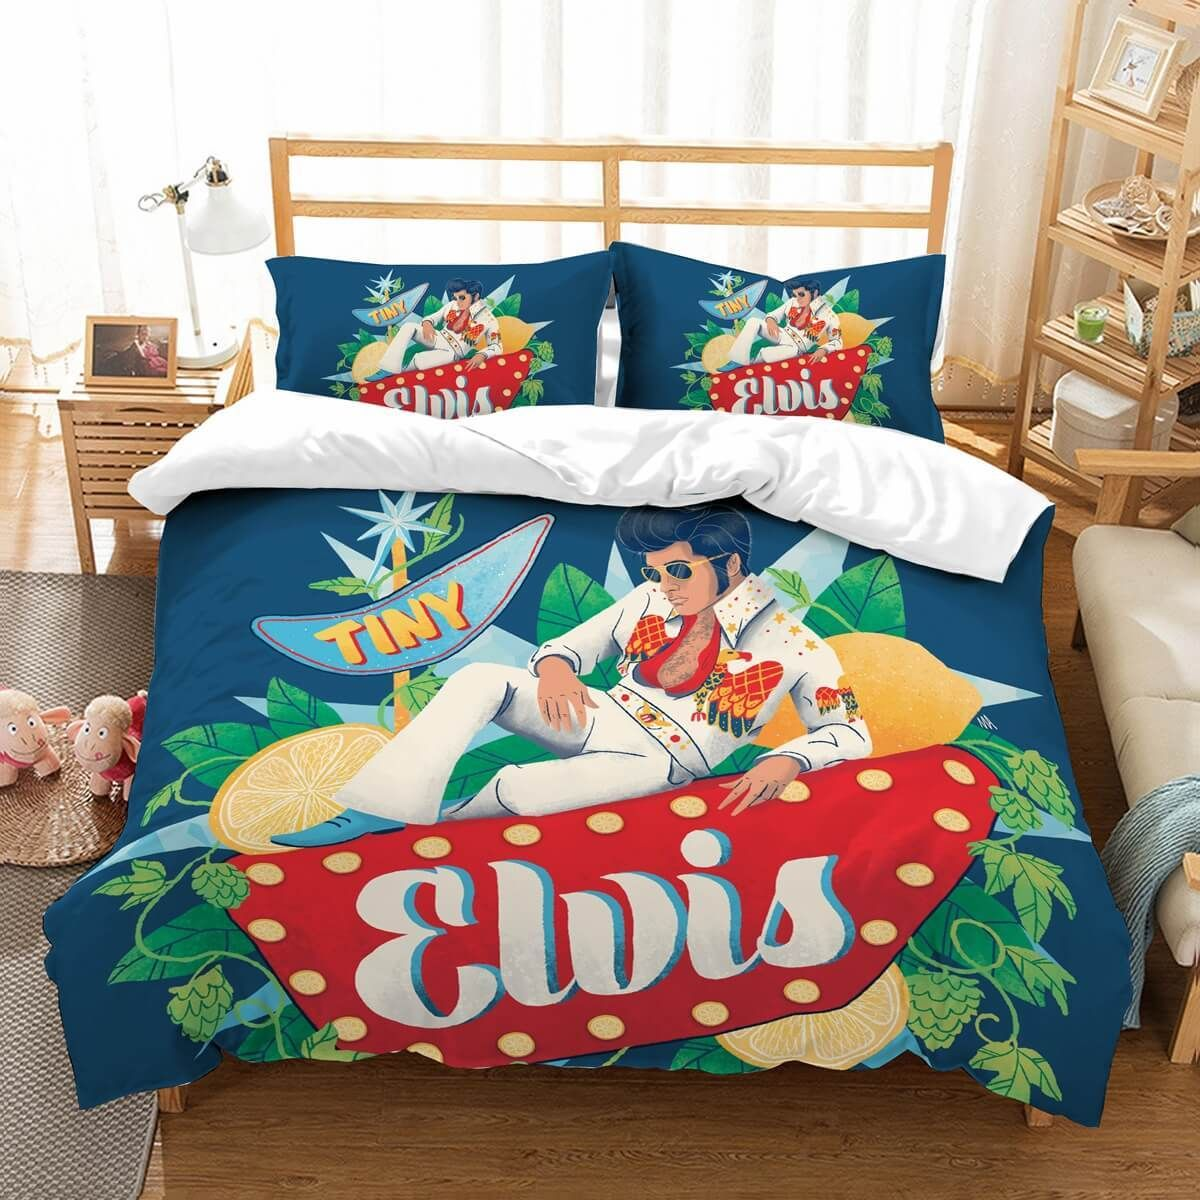 Elvis Presley Bedding Sets.3d Customize Elvis Presley Bedding Set Duvet Cover Set